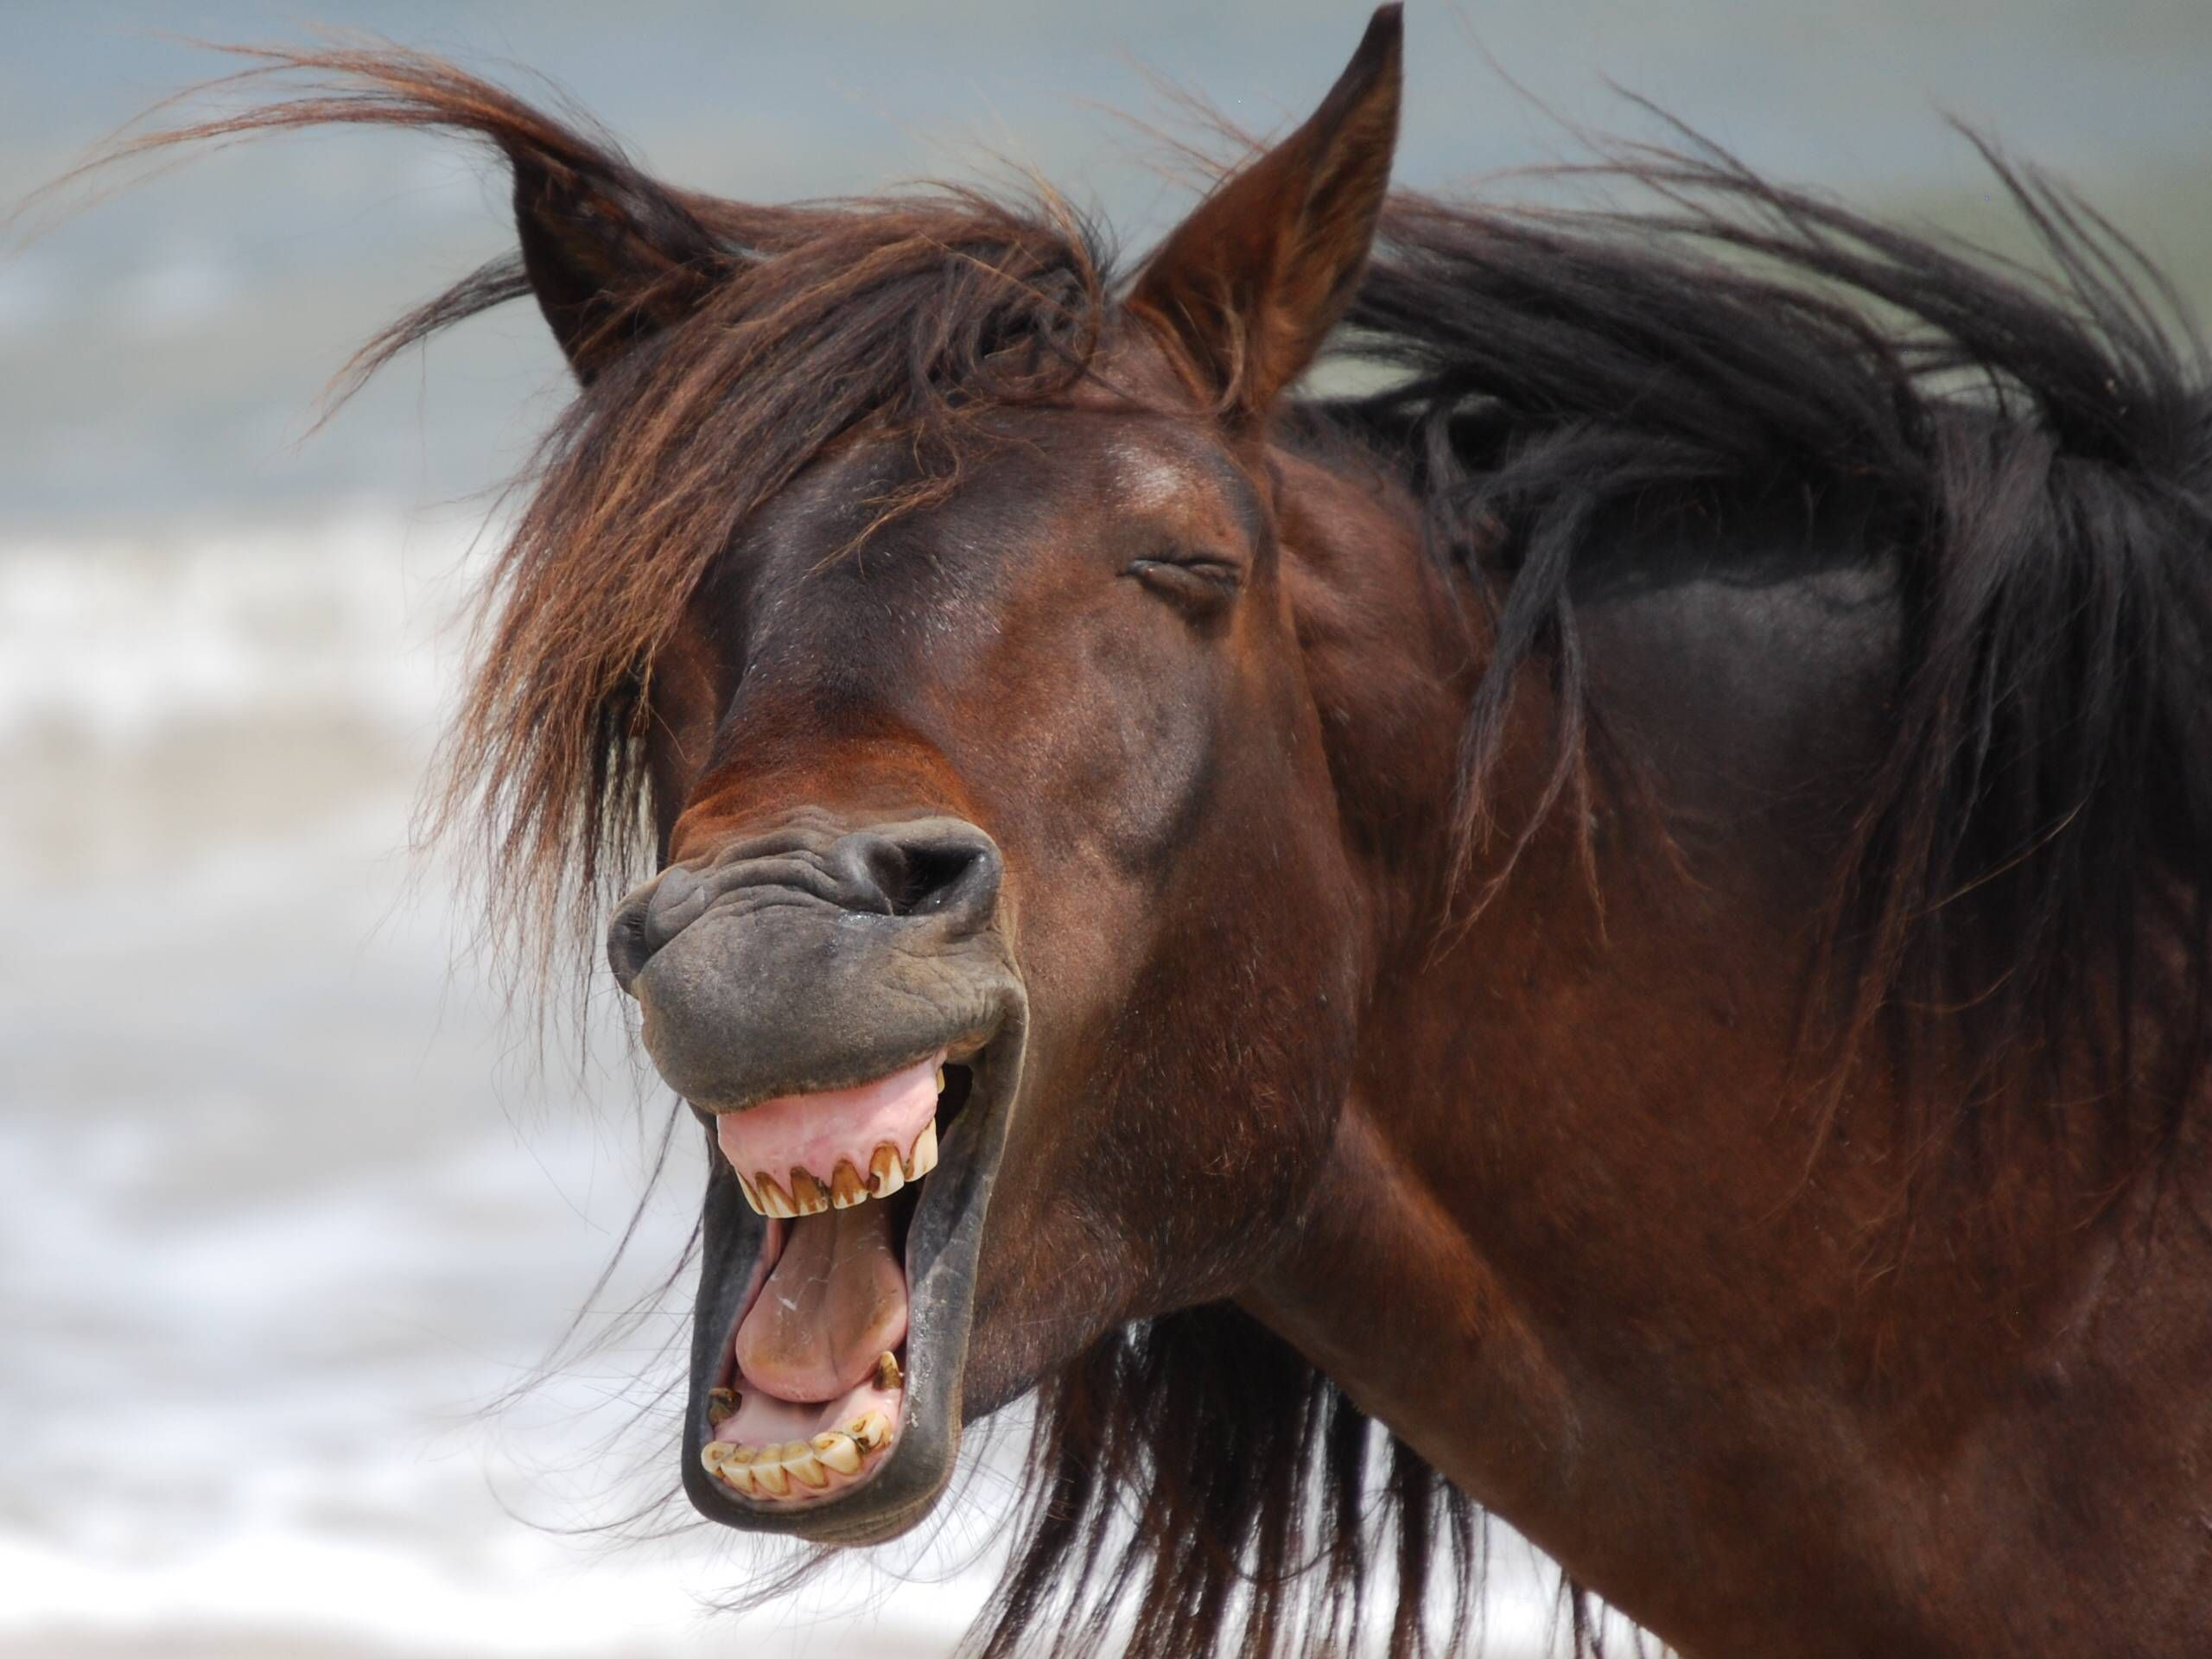 Funny Horse | Whats so funny horse?! took this today - Imgur